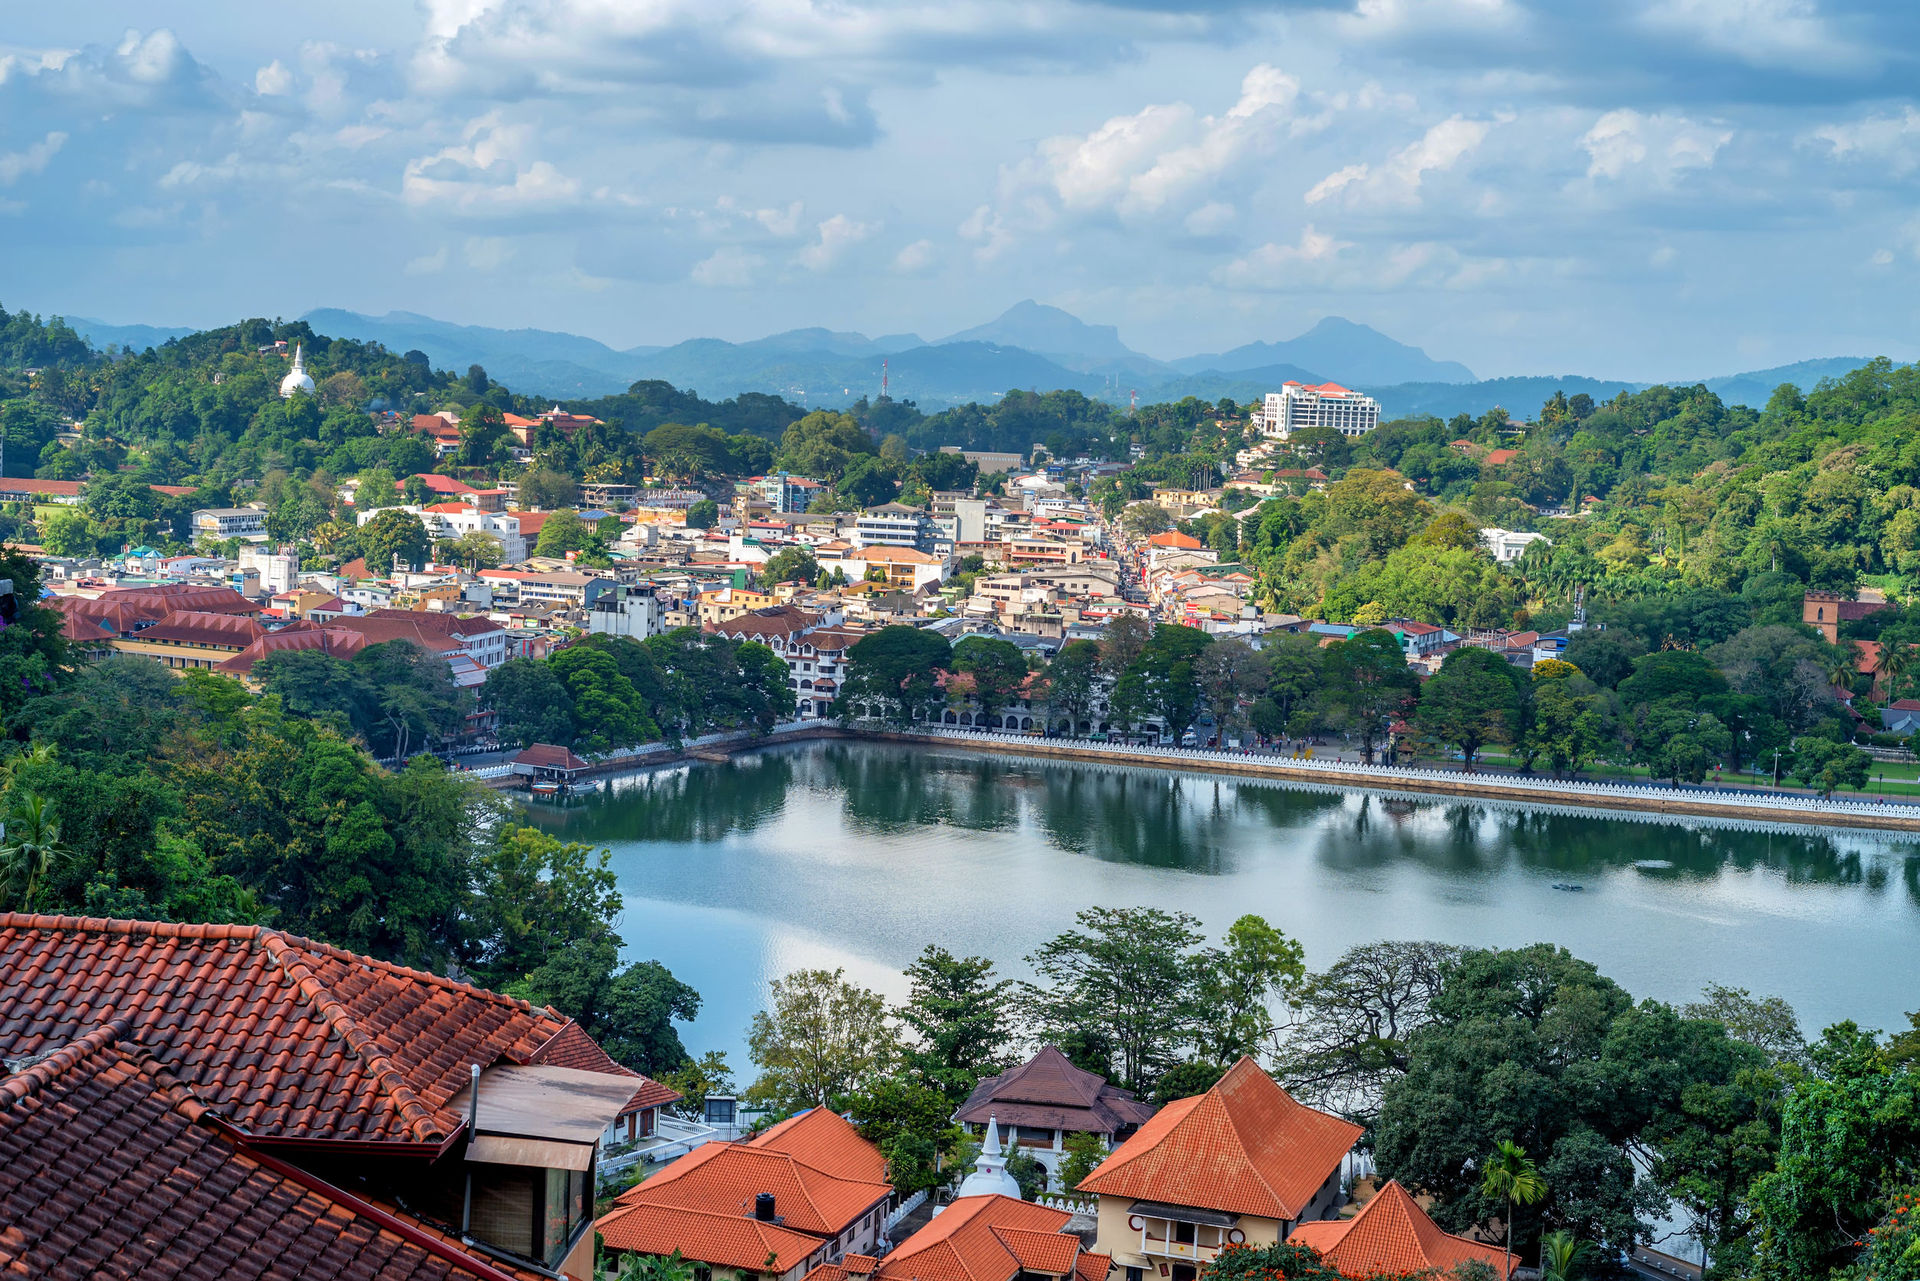 Sweet as Kandy: Sri Lanka's cultural heart